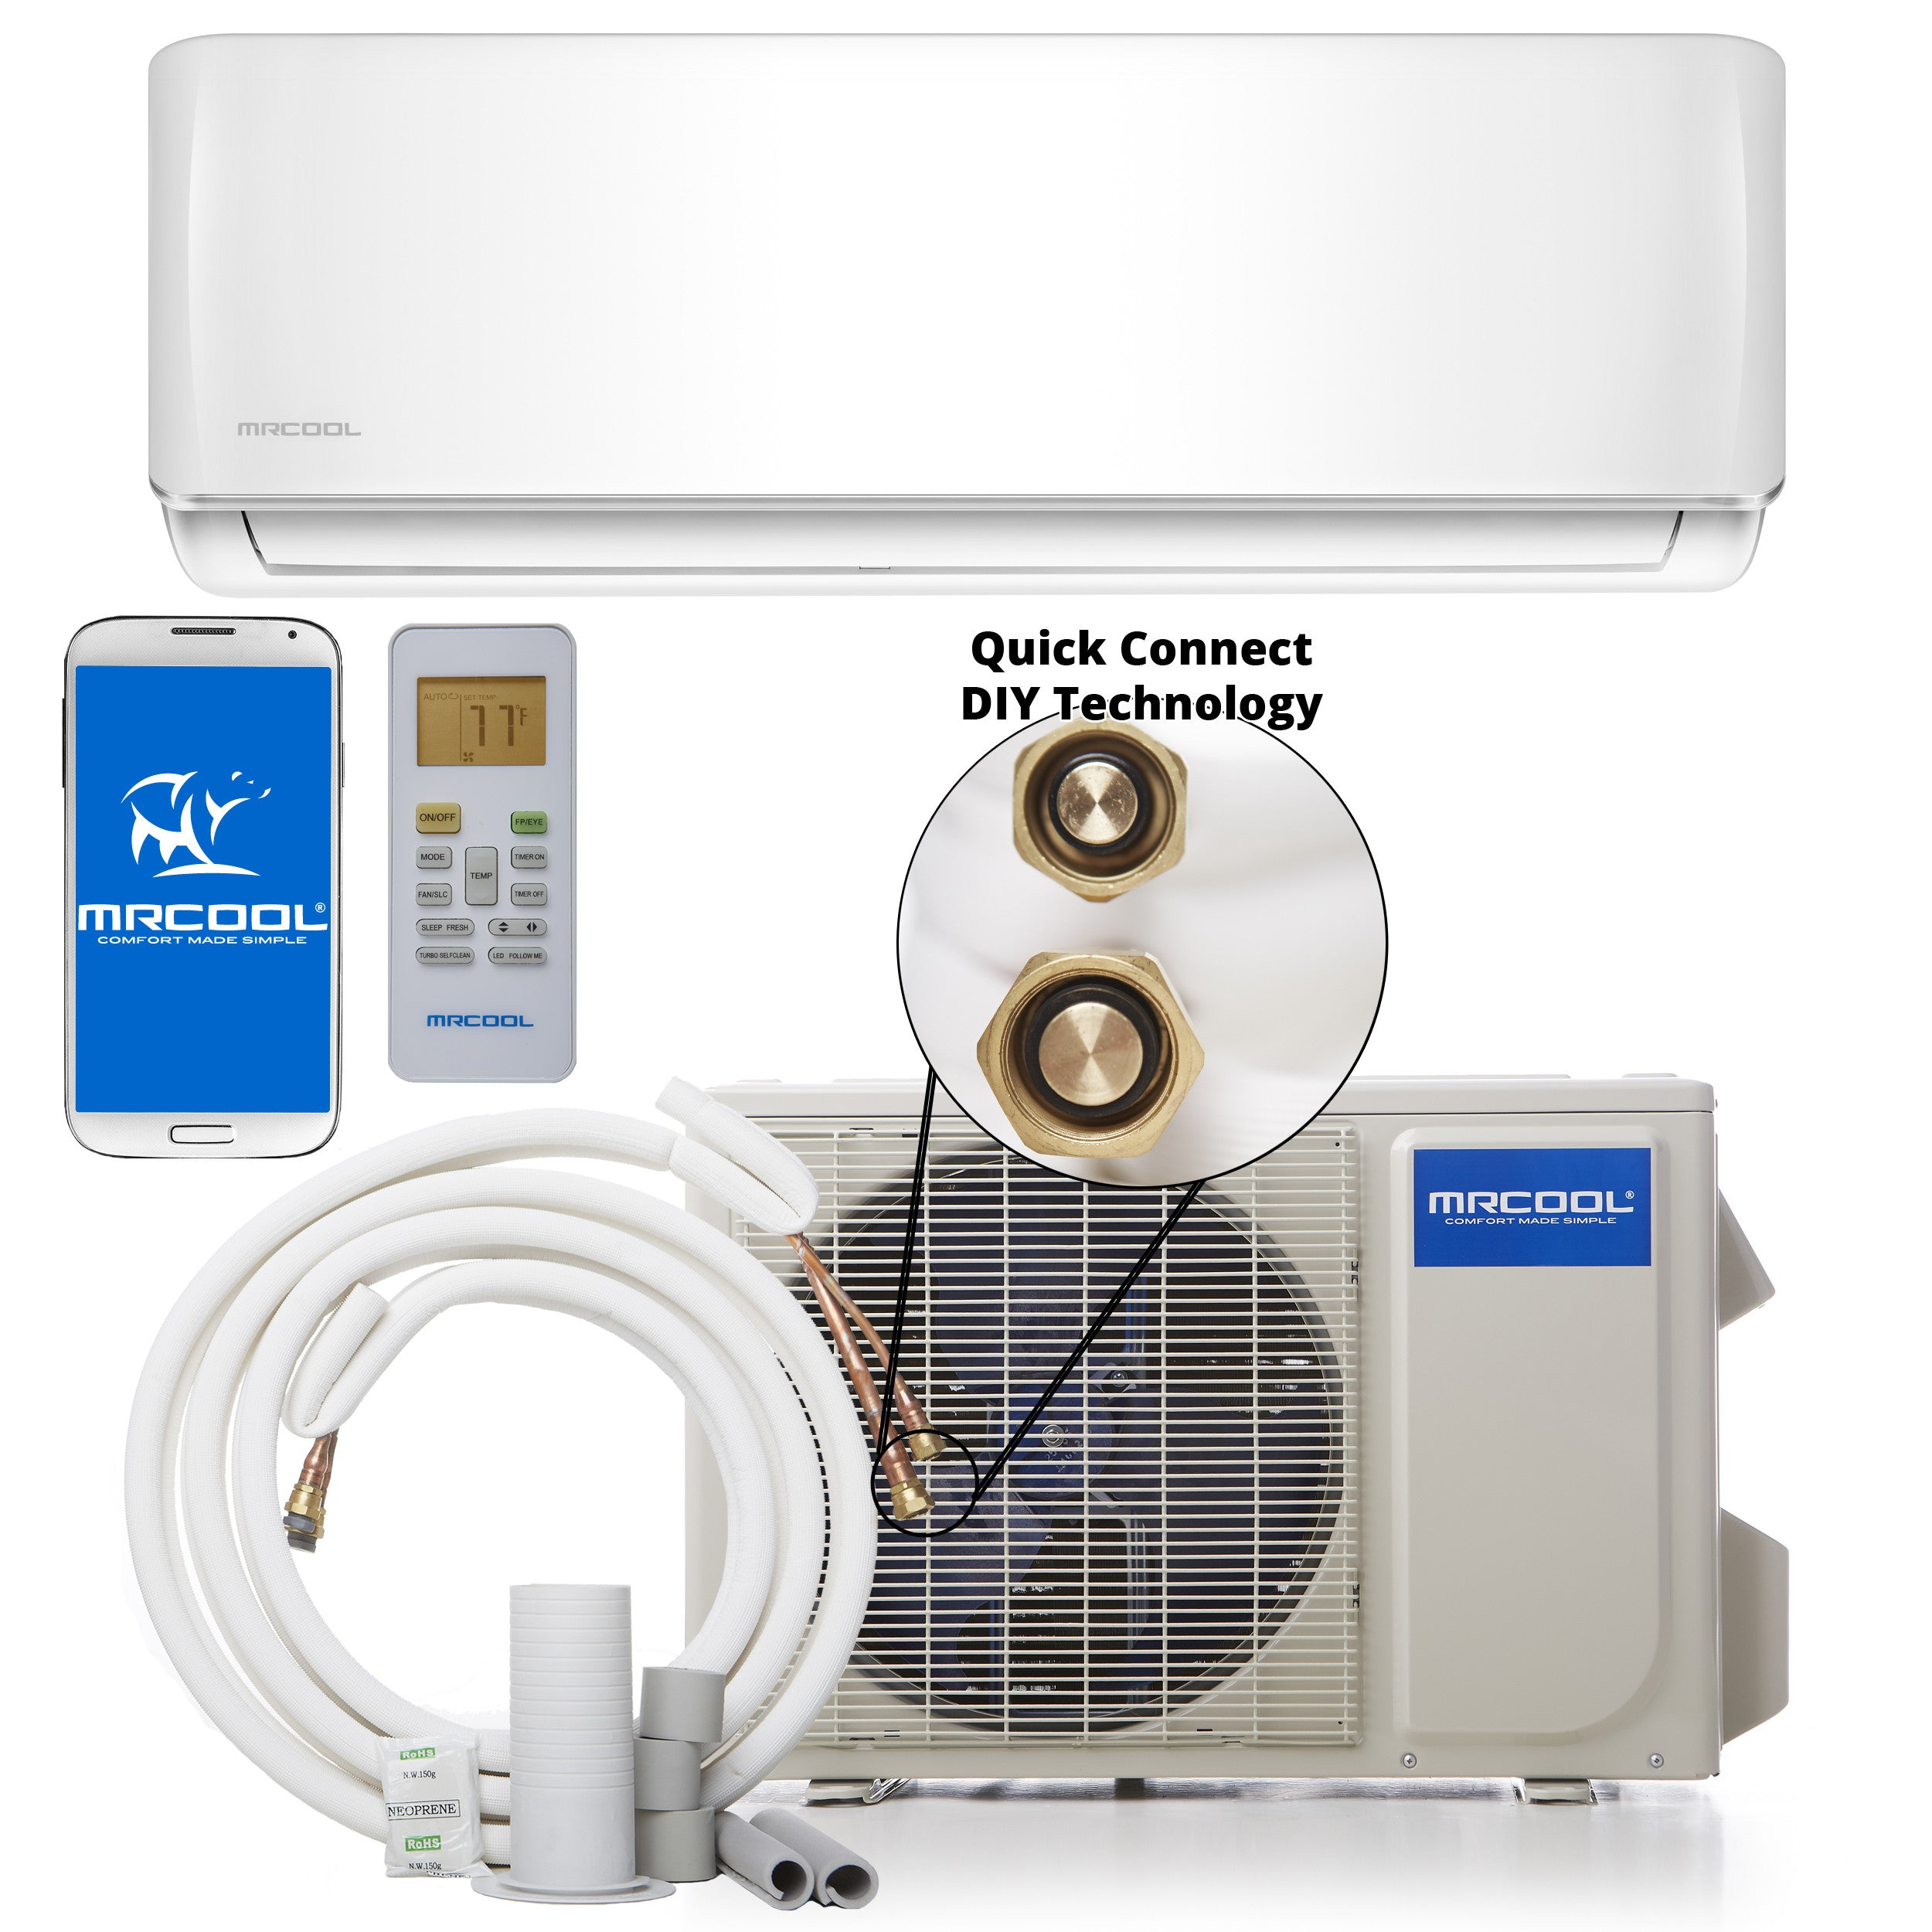 offer flexibility heat pump season the air a conditioner as your and cool warm comfort heating acts keep winter summer pumps aqua comforter heatingcooling cooling all home it in to gaqrrender traditional